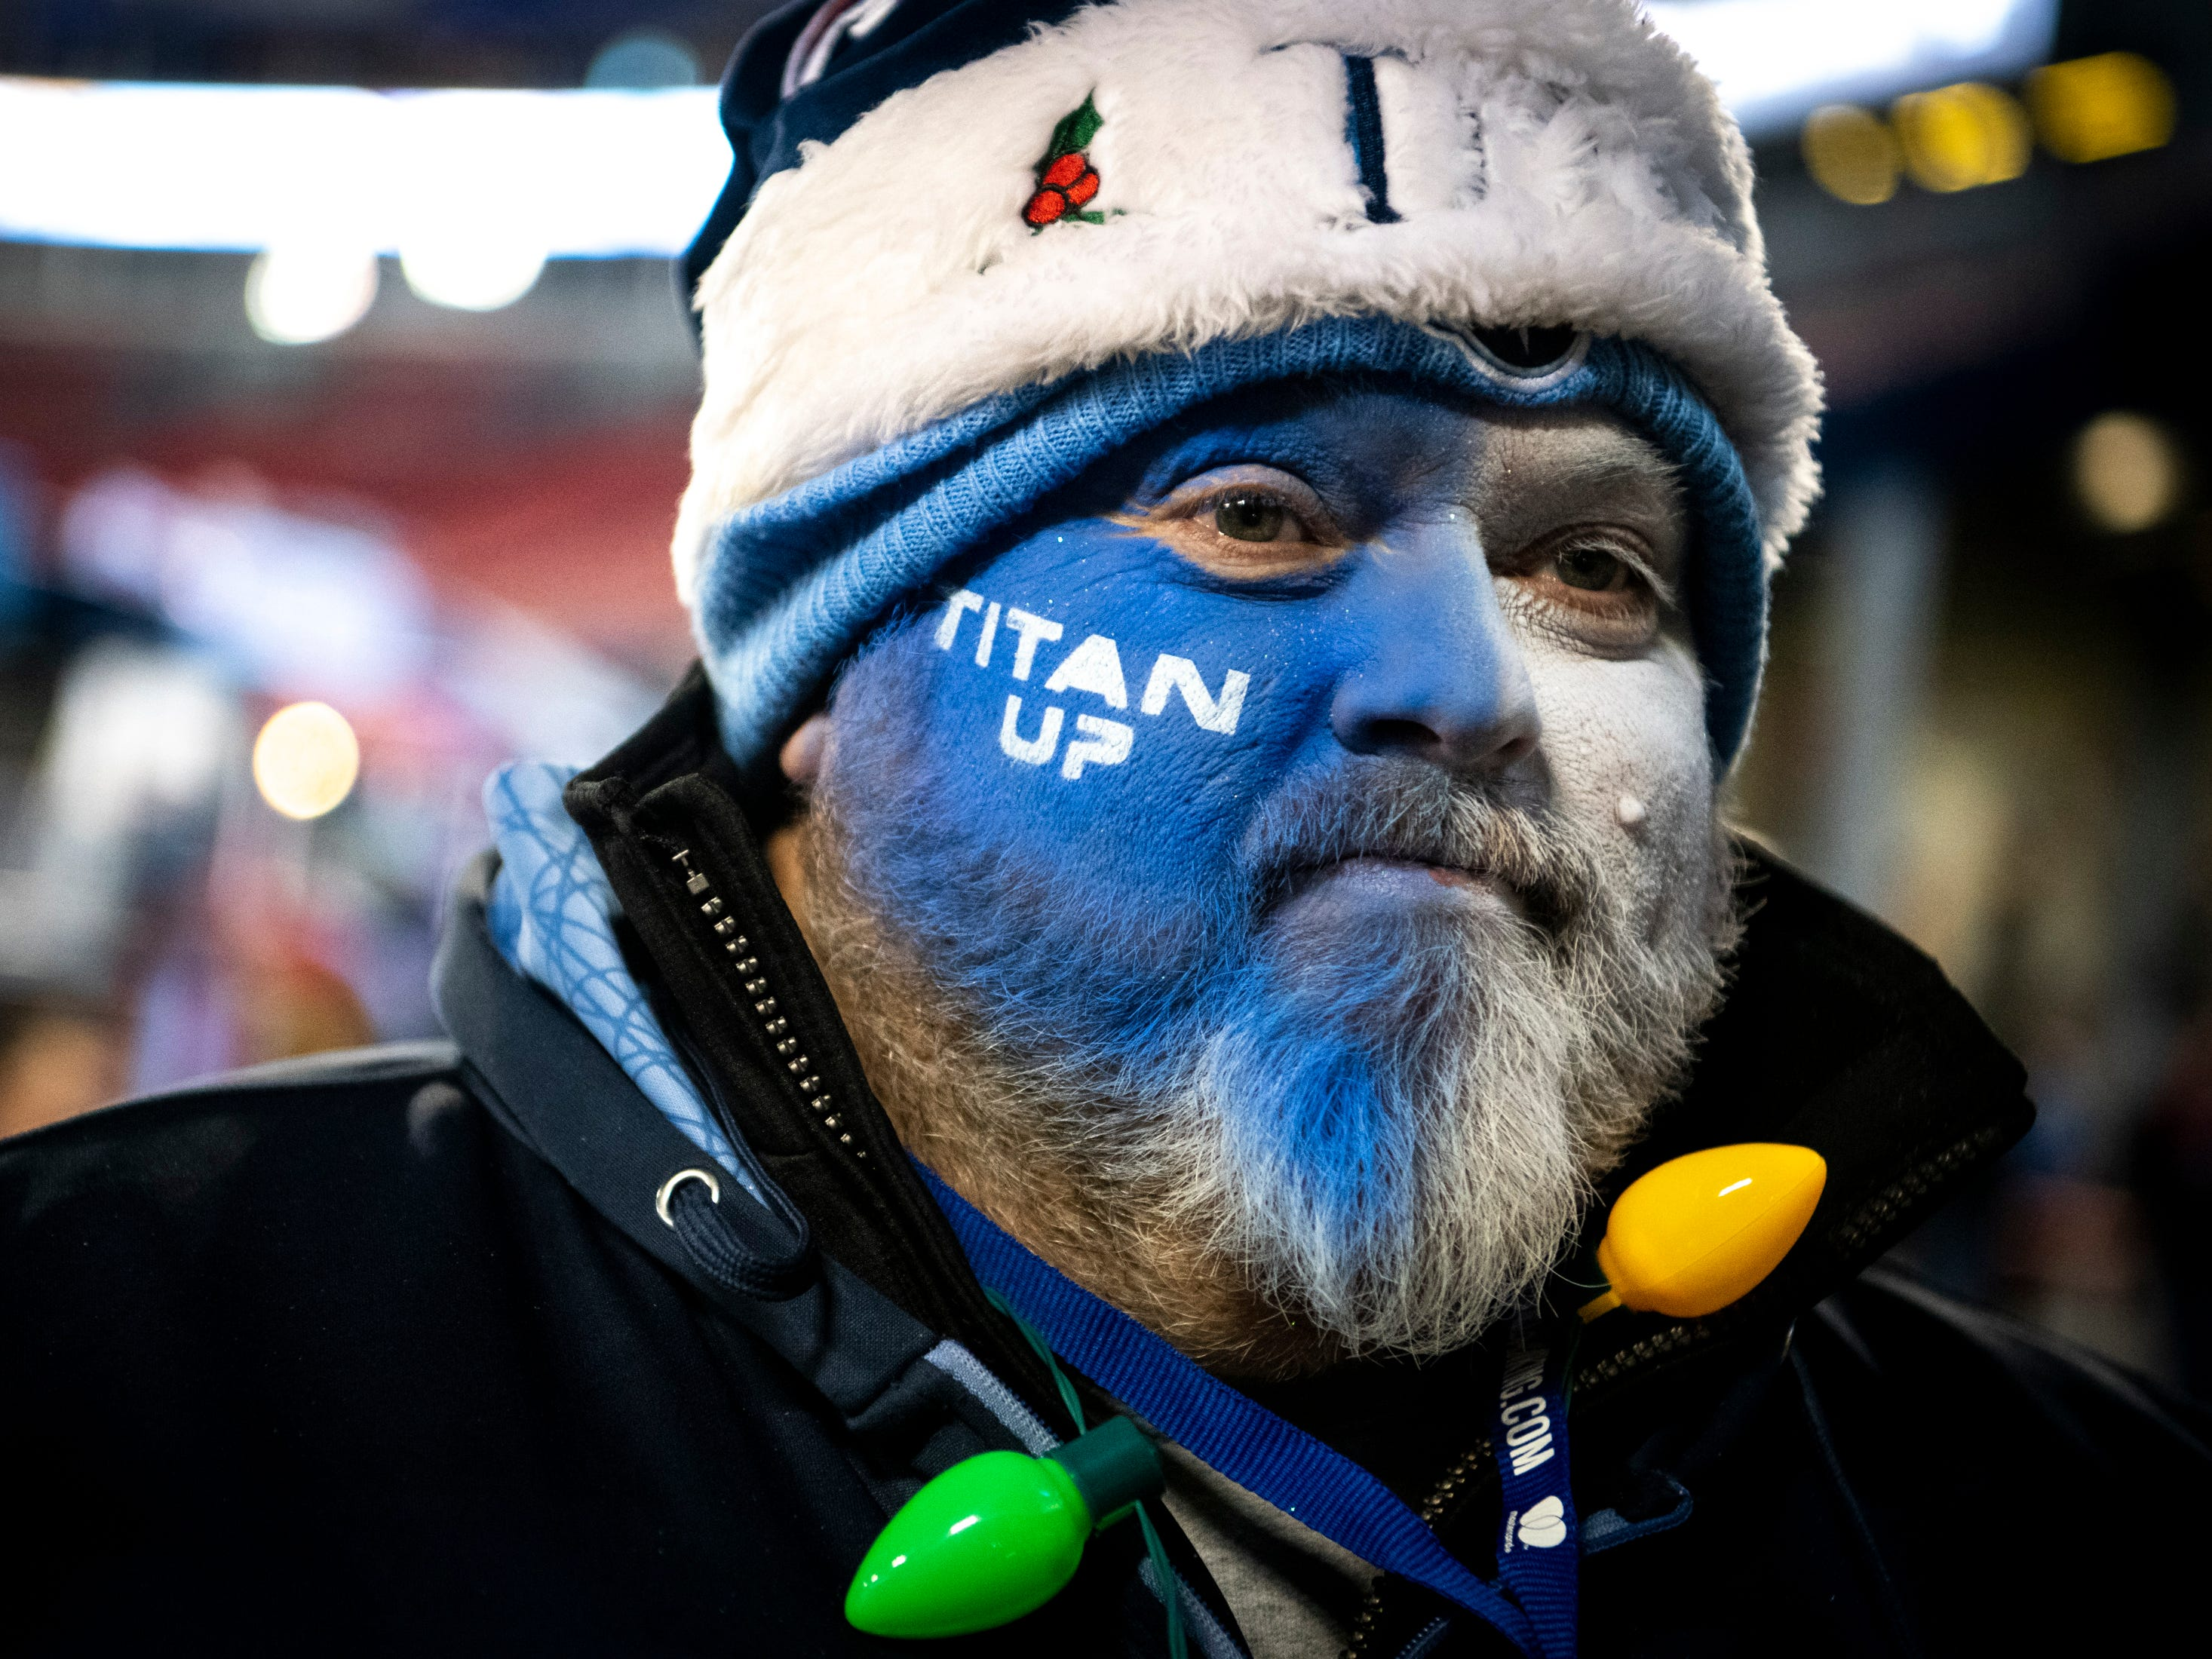 Richard Brewer, Loretto, Tenn., wears a Titans Santa hat before the game between the Tennessee Titans and the Jacksonville Jaguars at Nissan Stadium in Nashville, Tenn., Thursday, Dec. 6, 2018.